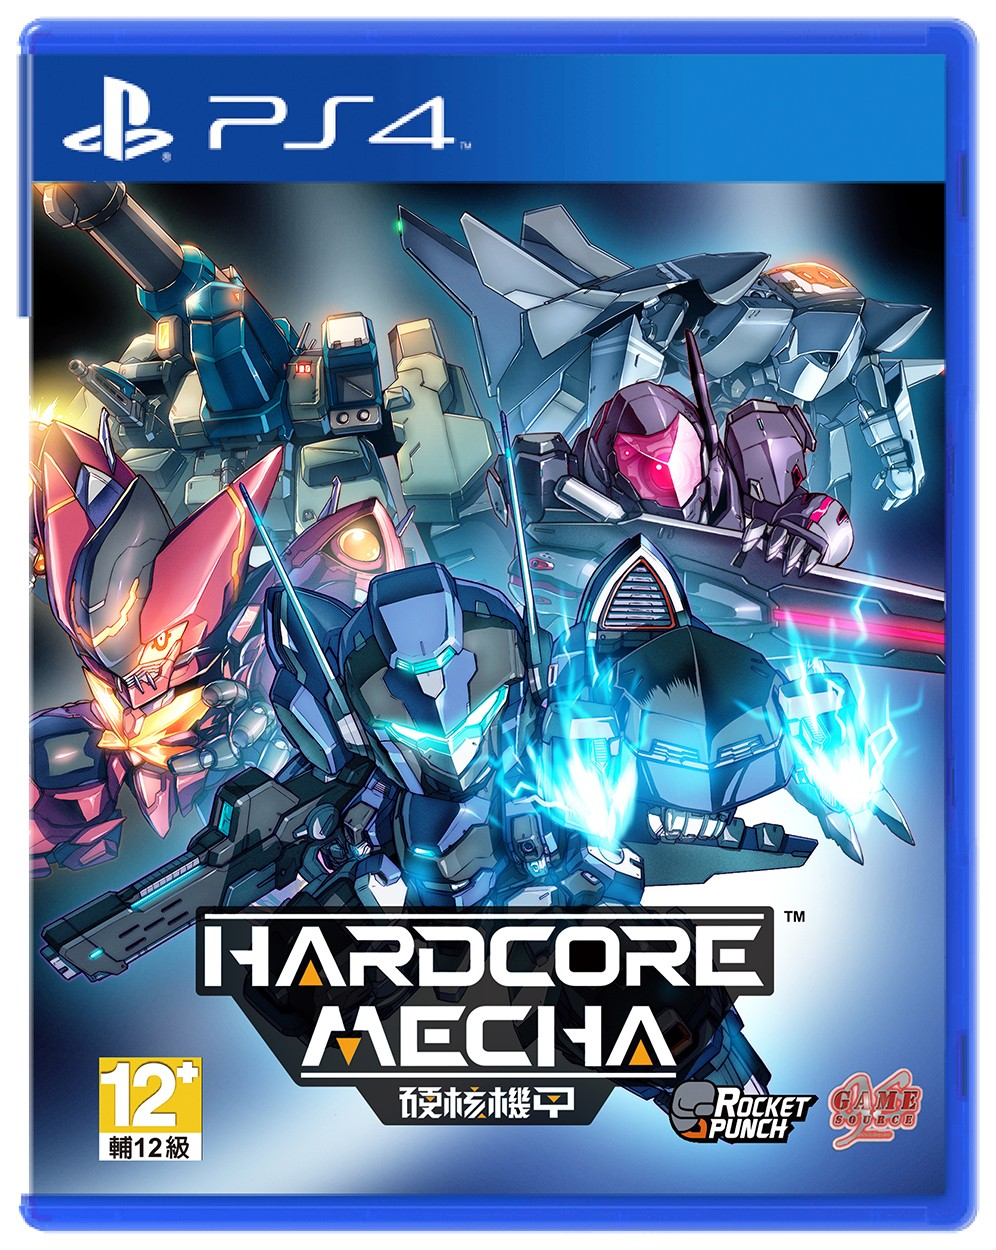 Hardcore Mecha Multi-Language, Hardcore Mecha, Code: Hardcore, PlayStation 4, PS4, English, Multi-language, Asia release, Asia, release date, gameplay, features, price, pre-order, RocketPunch Games